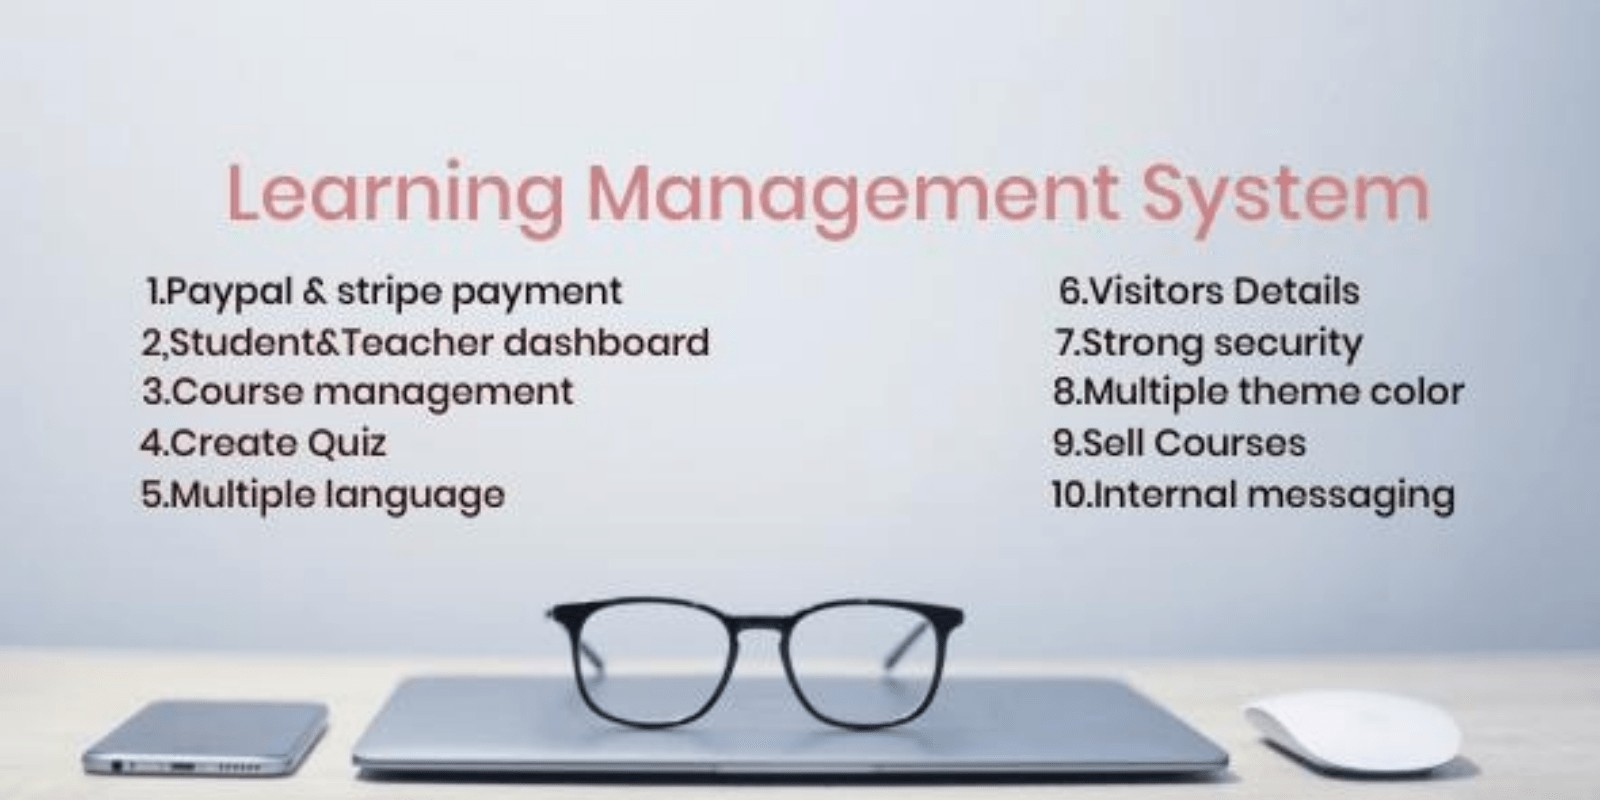 LearningPoint Learning Management System